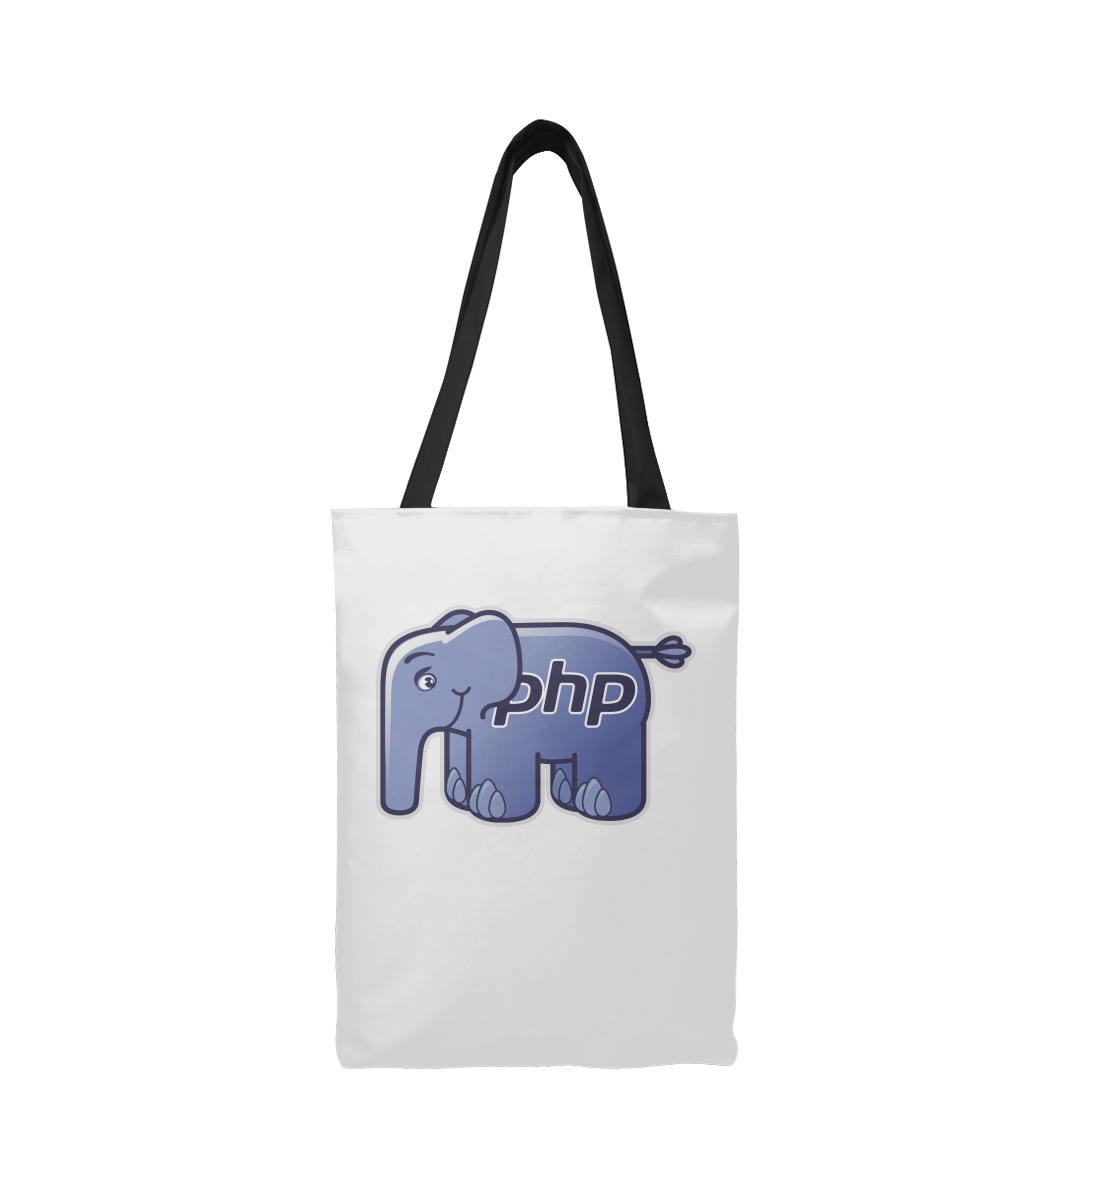 Php elephant one amazing elephant